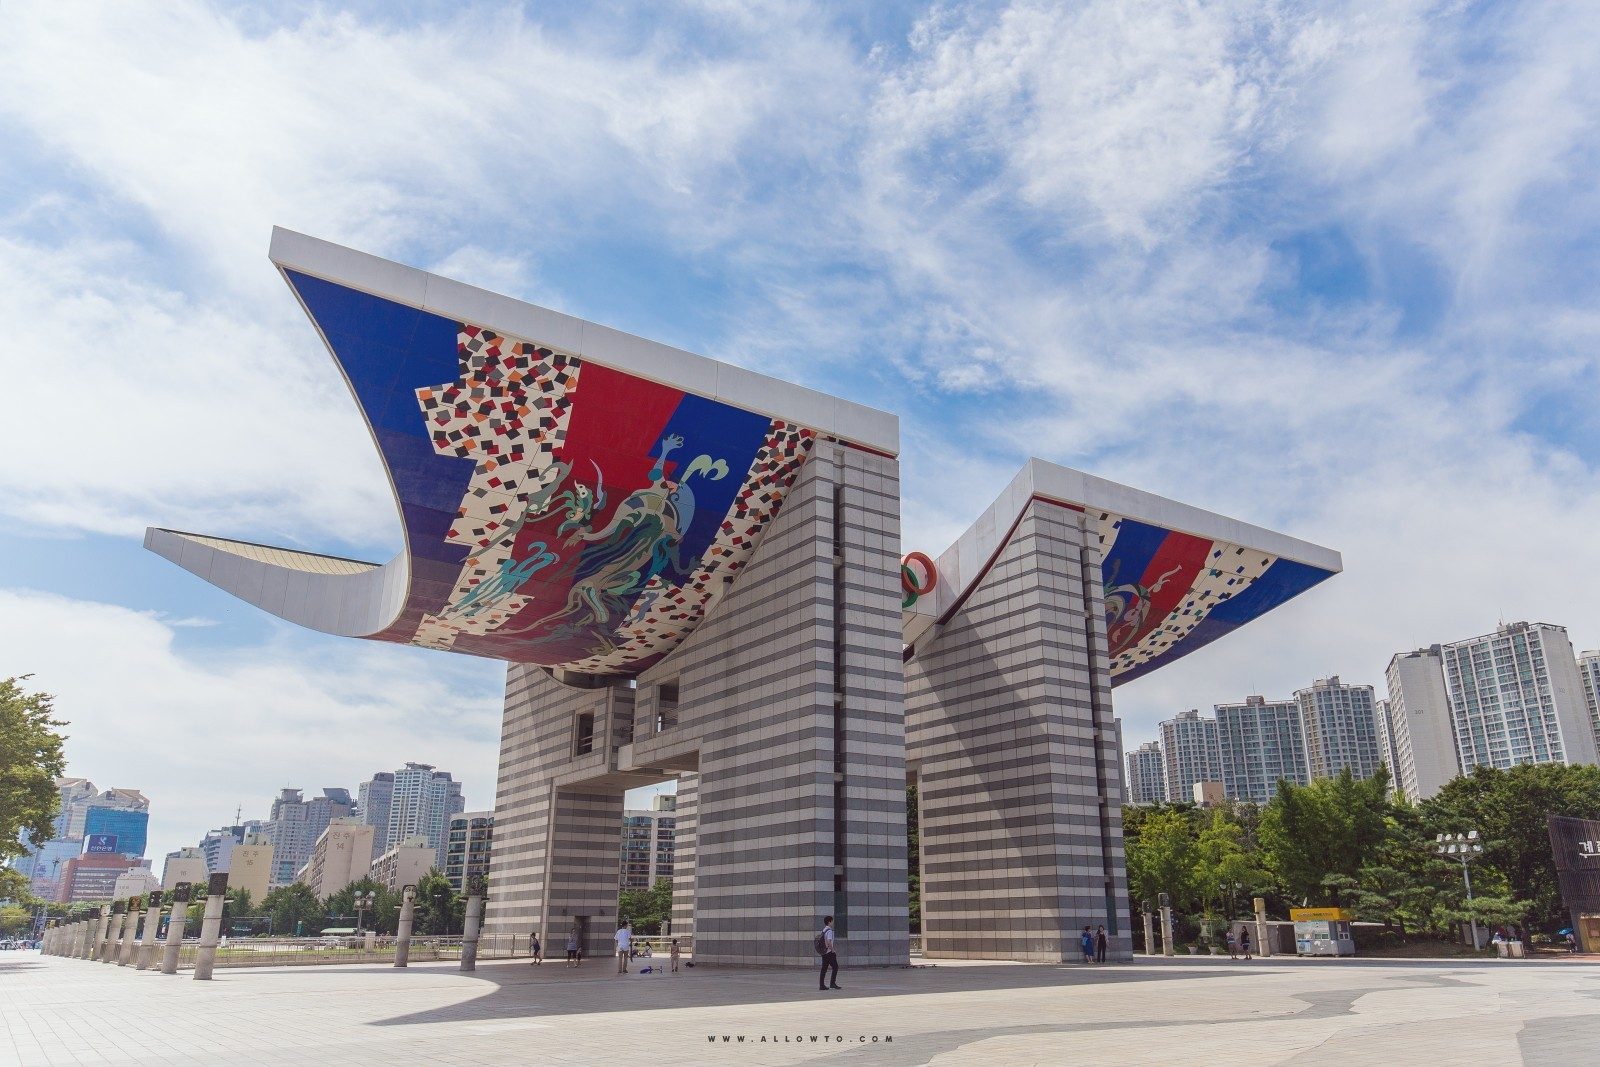 xypex 올림픽 기념물 korea olympic monument